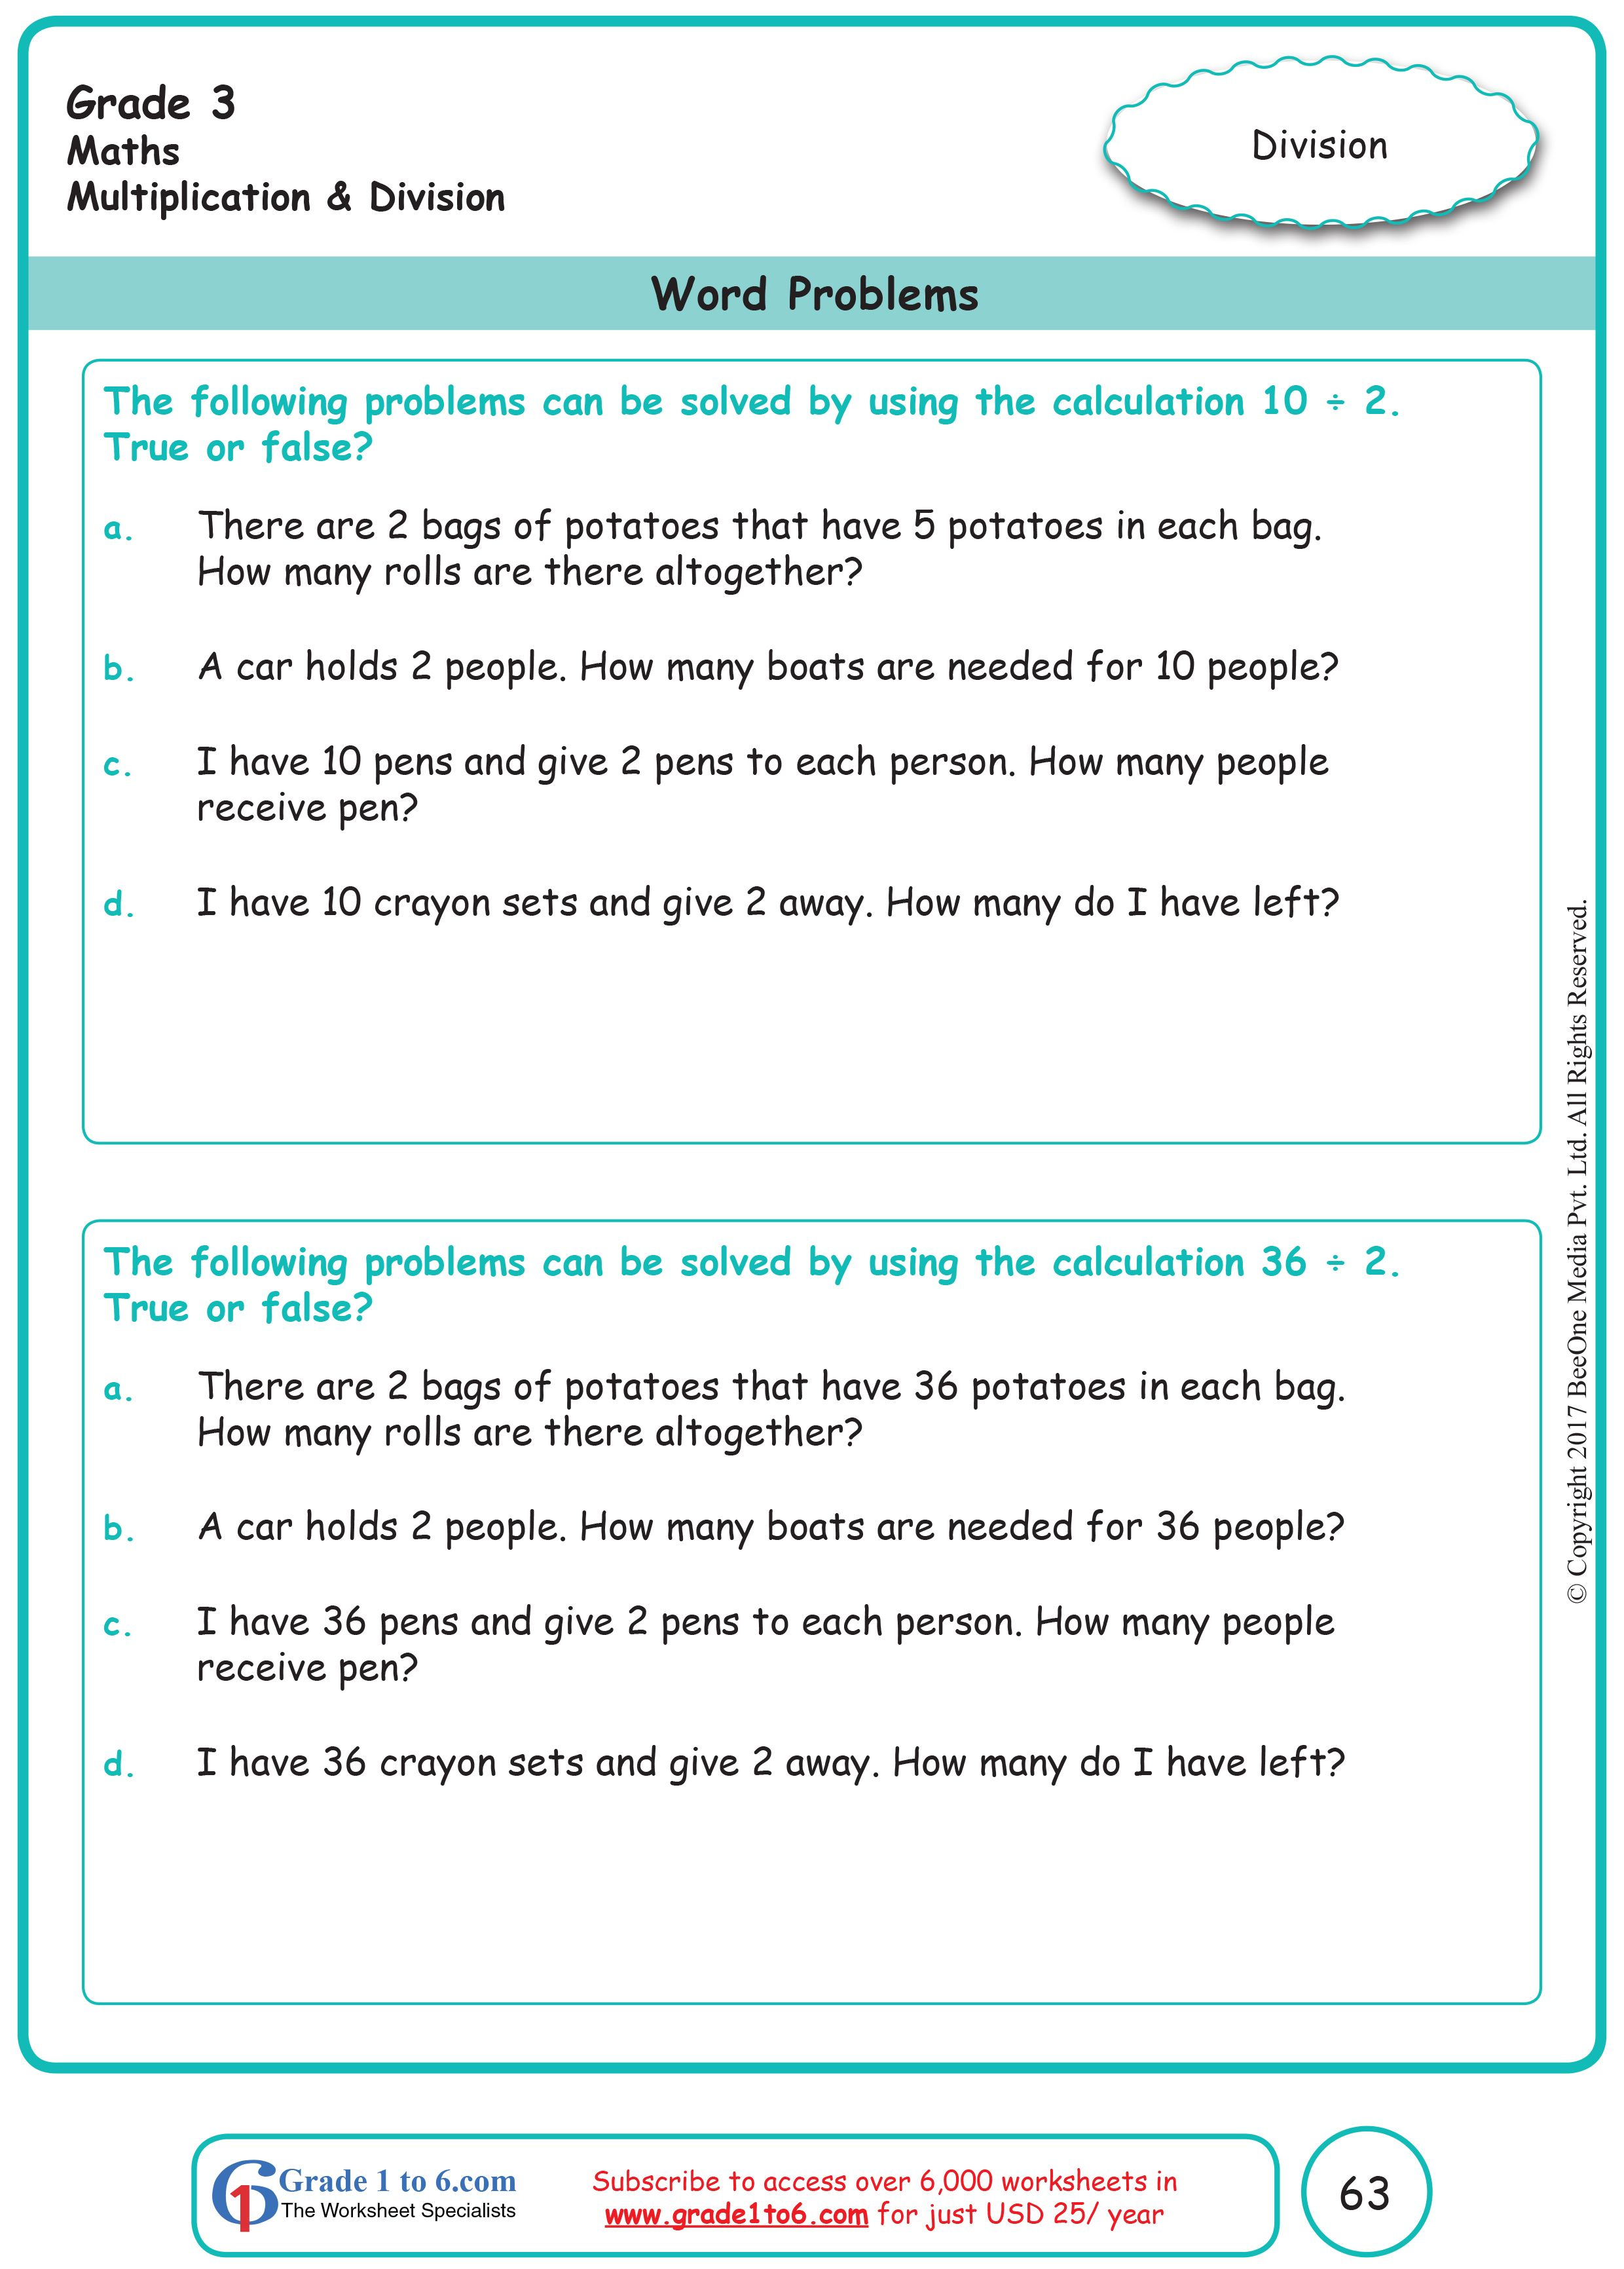 medium resolution of Word Problems in Multiplication \u0026 Division Grade 3 Math   Free math  worksheets